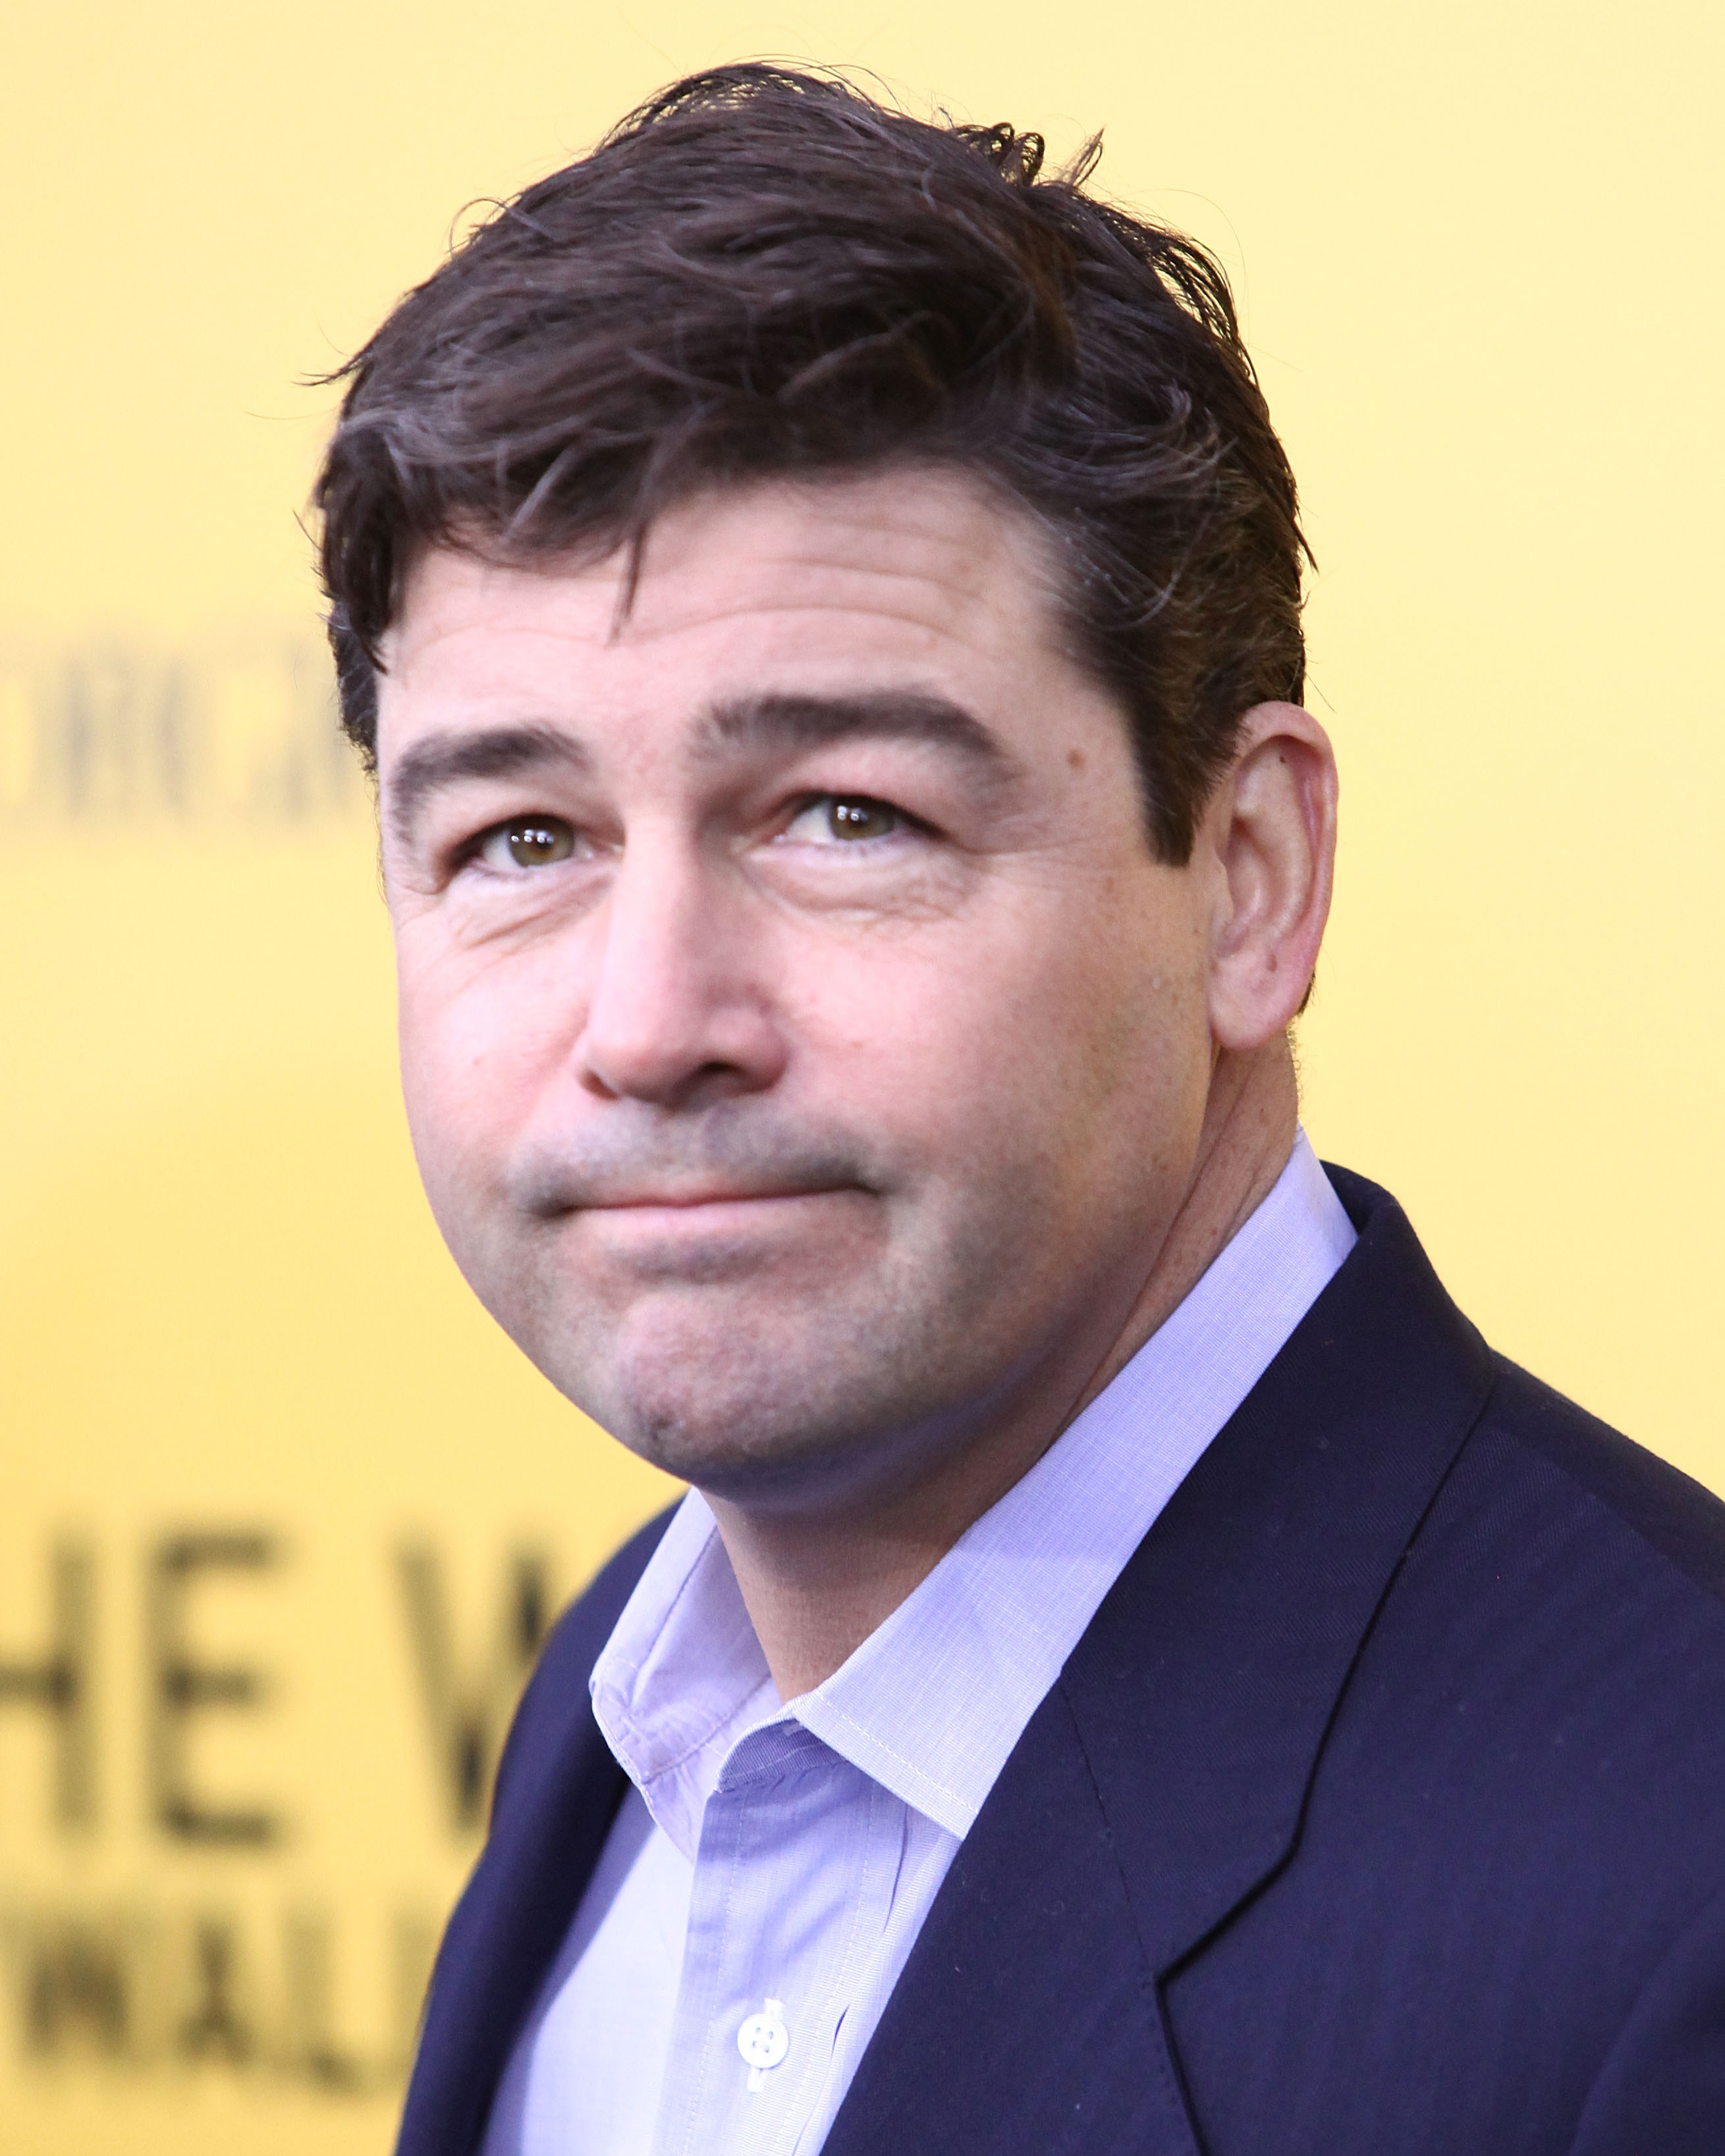 Kyle Chandler at Ziegfeld Theater on December 17, 2013 in New York City.